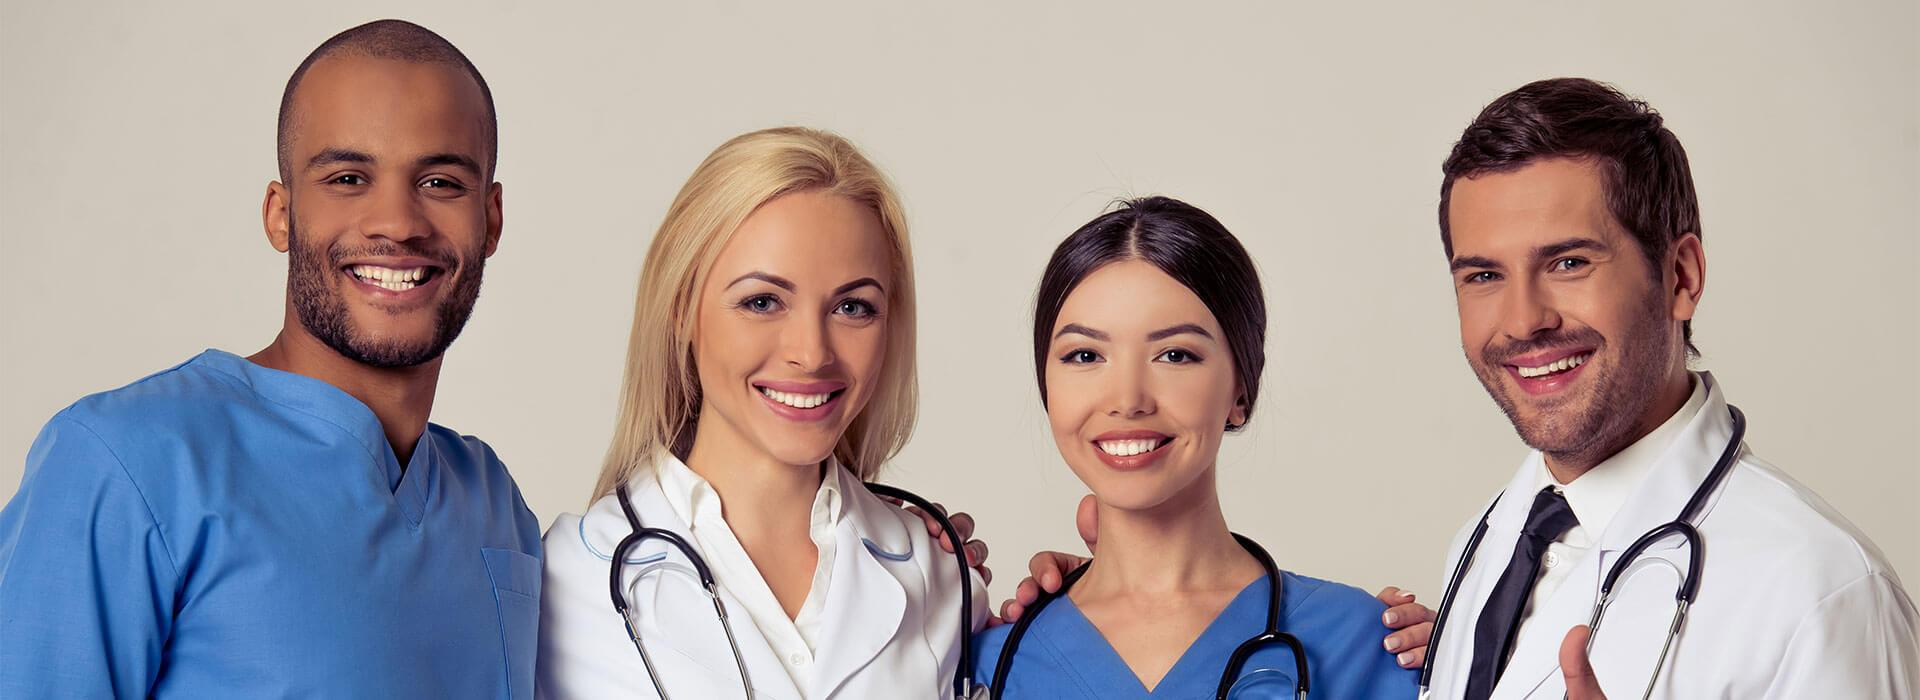 discover-career-dentistry